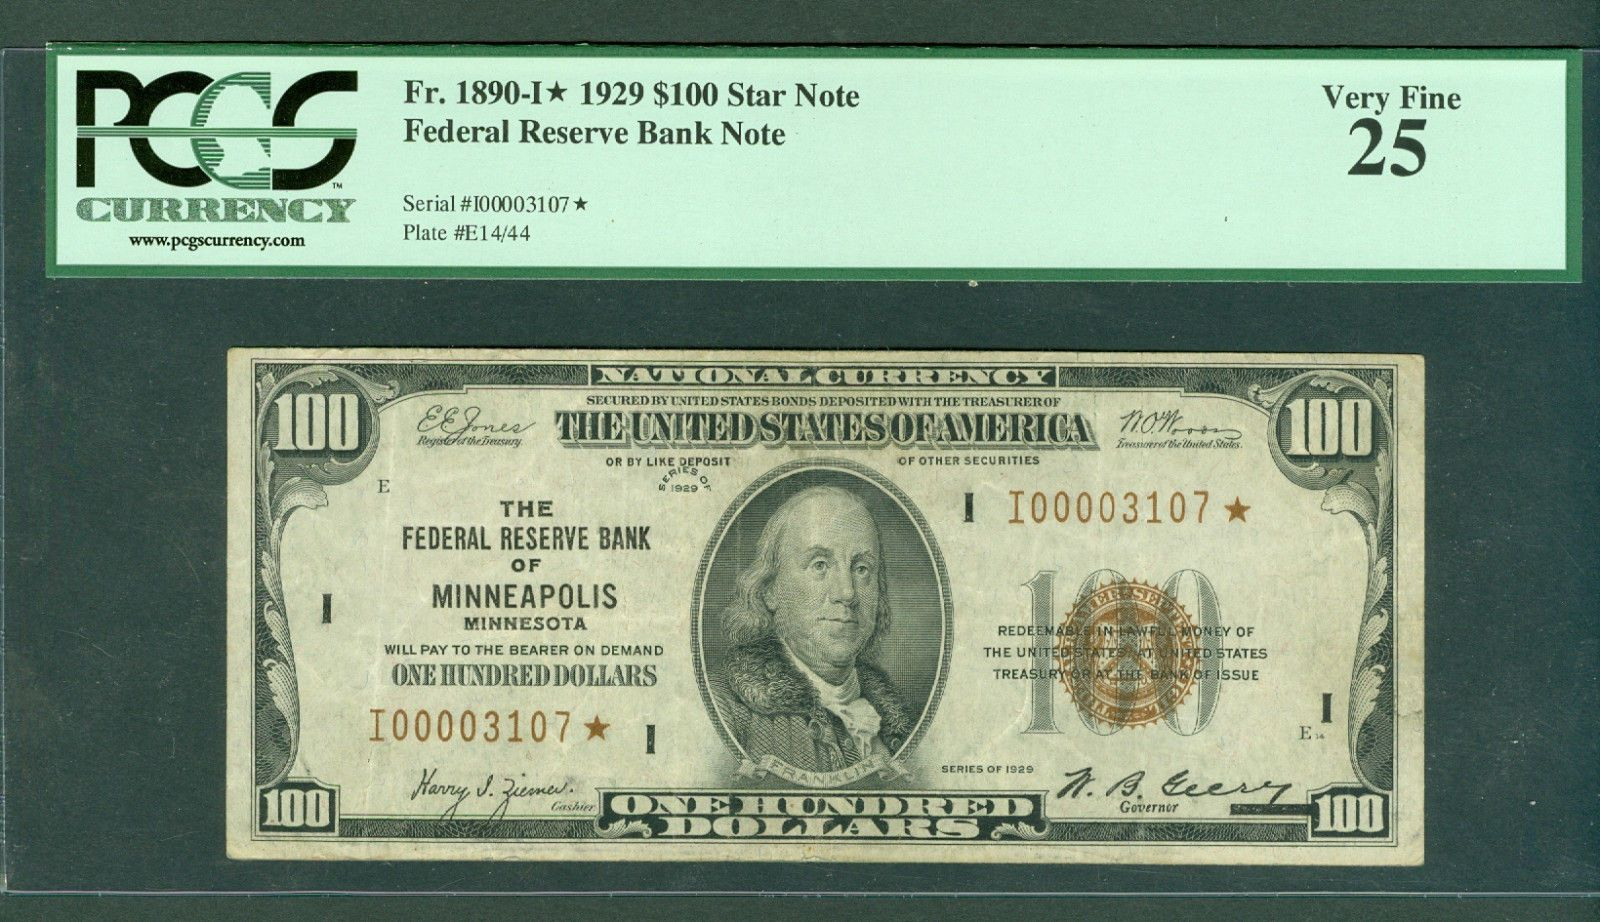 awesome FR#1890* 1929 $100 RARE 4 DIGIT FRBN MINNEAPOLIS STAR NOTE BEAUTY PCGS-VF 25!!!   Check more at http://harmonisproduction.com/fr1890-1929-100-rare-4-digit-frbn-minneapolis-star-note-beauty-pcgs-vf-25/